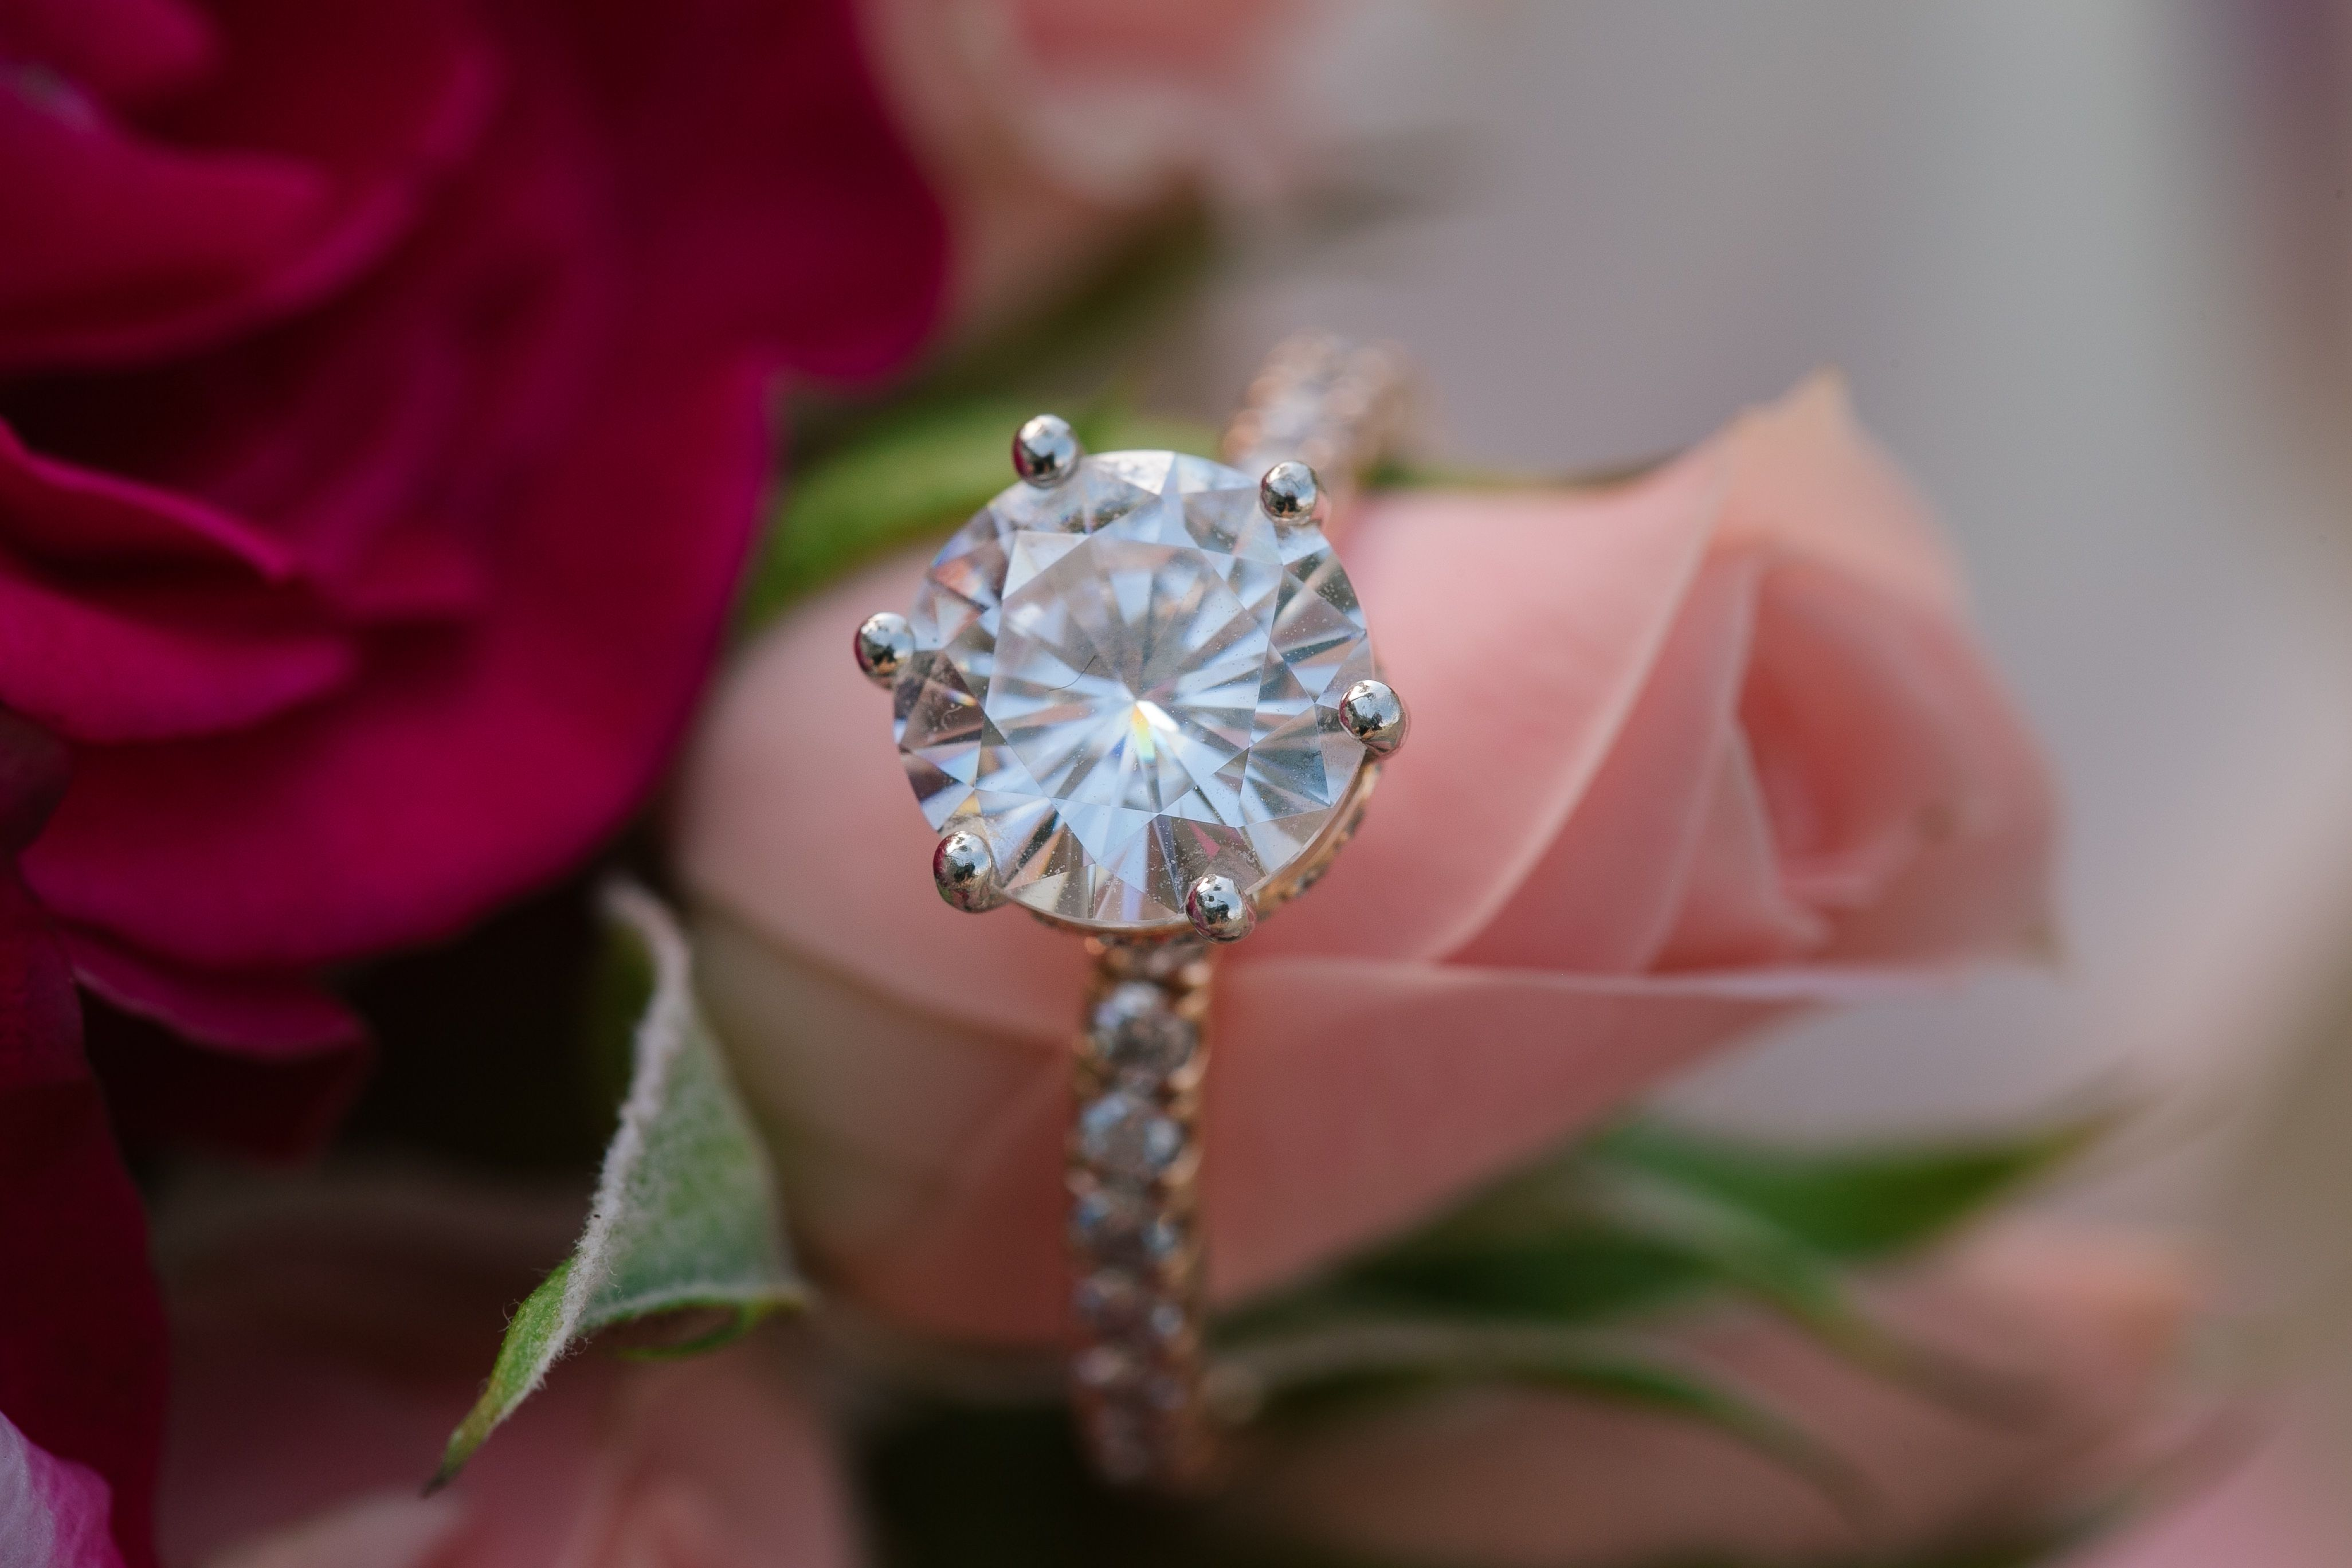 Rose gold 6 prong engagement ring made for my bestie